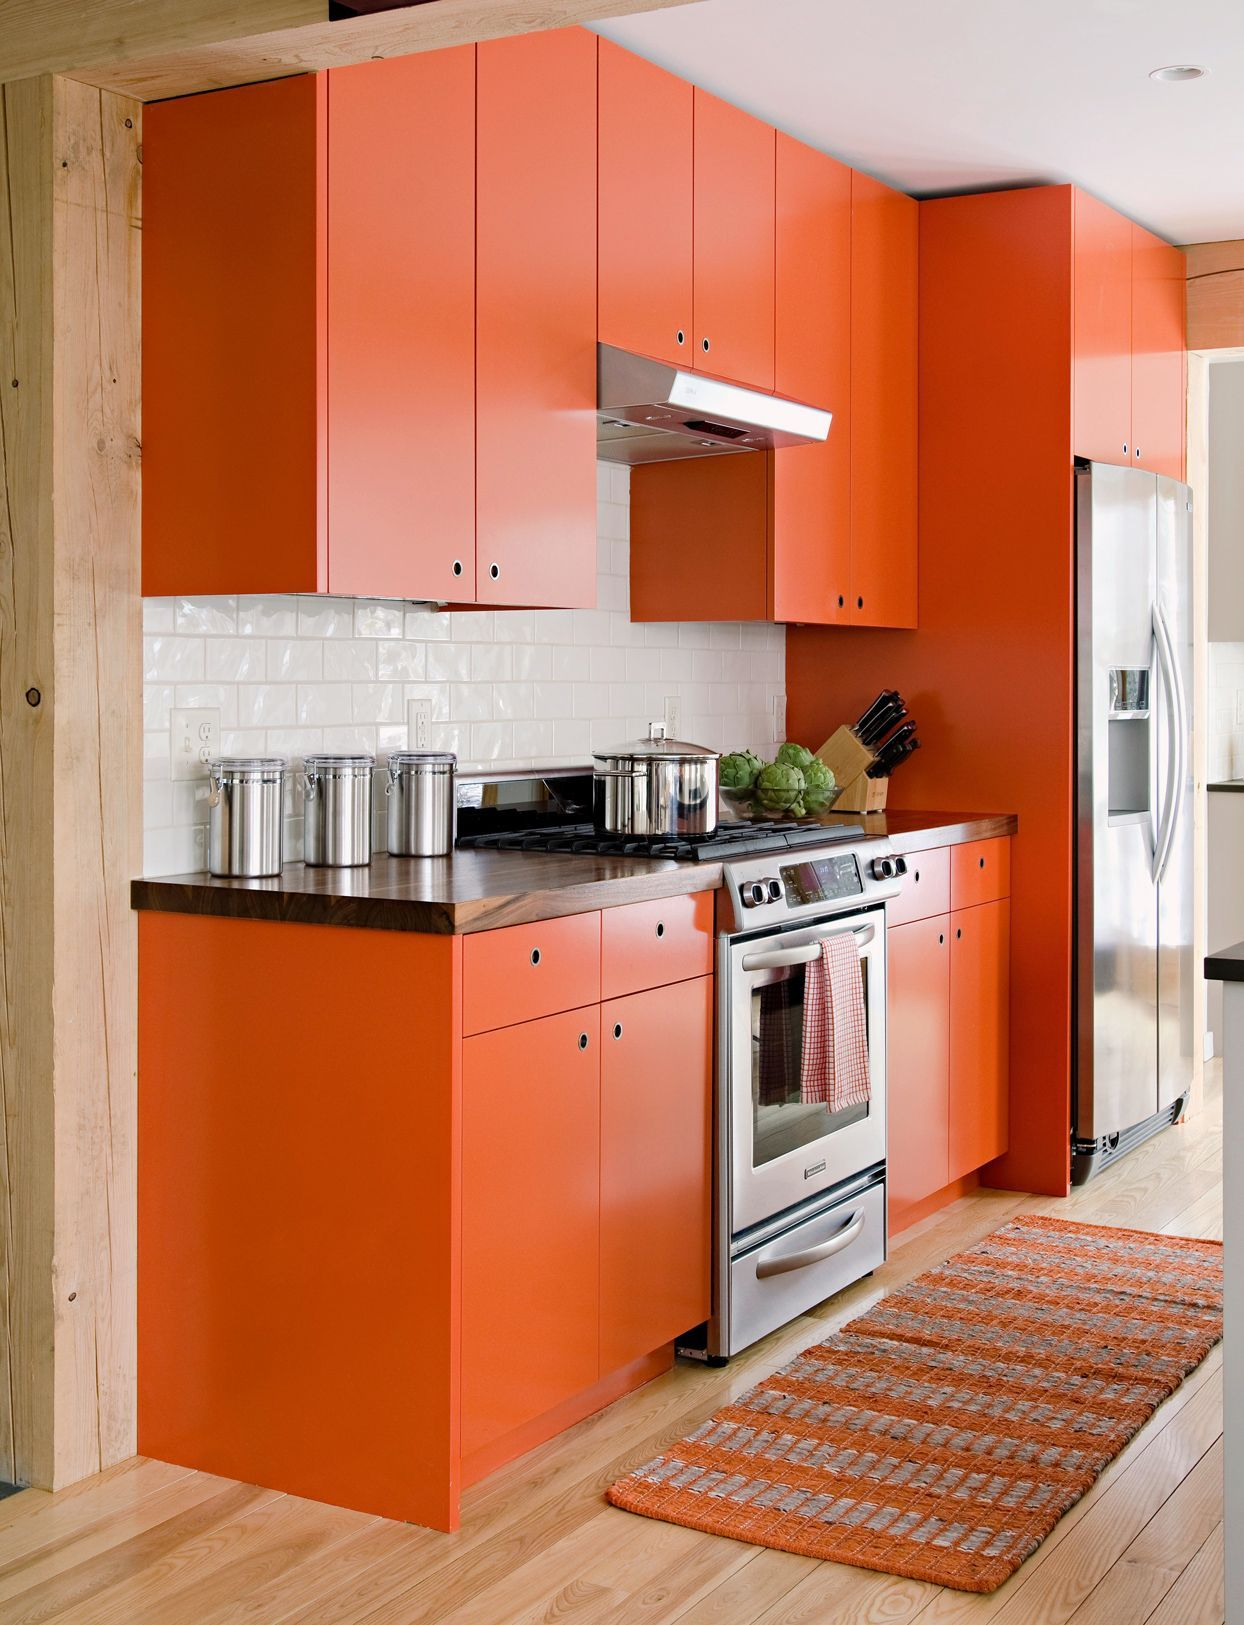 19 Popular Kitchen Cabinet Colors With Long Lasting Appeal In 2020 Kitchen Cabinet Colors Kitchen Cabinets Bold Kitchen